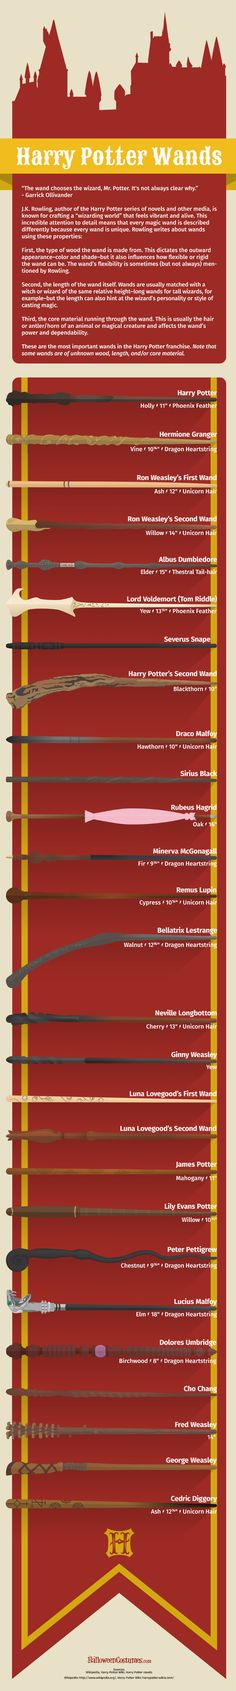 This is a giant infographic featuring a bunch of the most important wands from the Harry Potter universe. I learned very little by looking at it. Still, magic wands are cool so here's a whole bunch of them in...